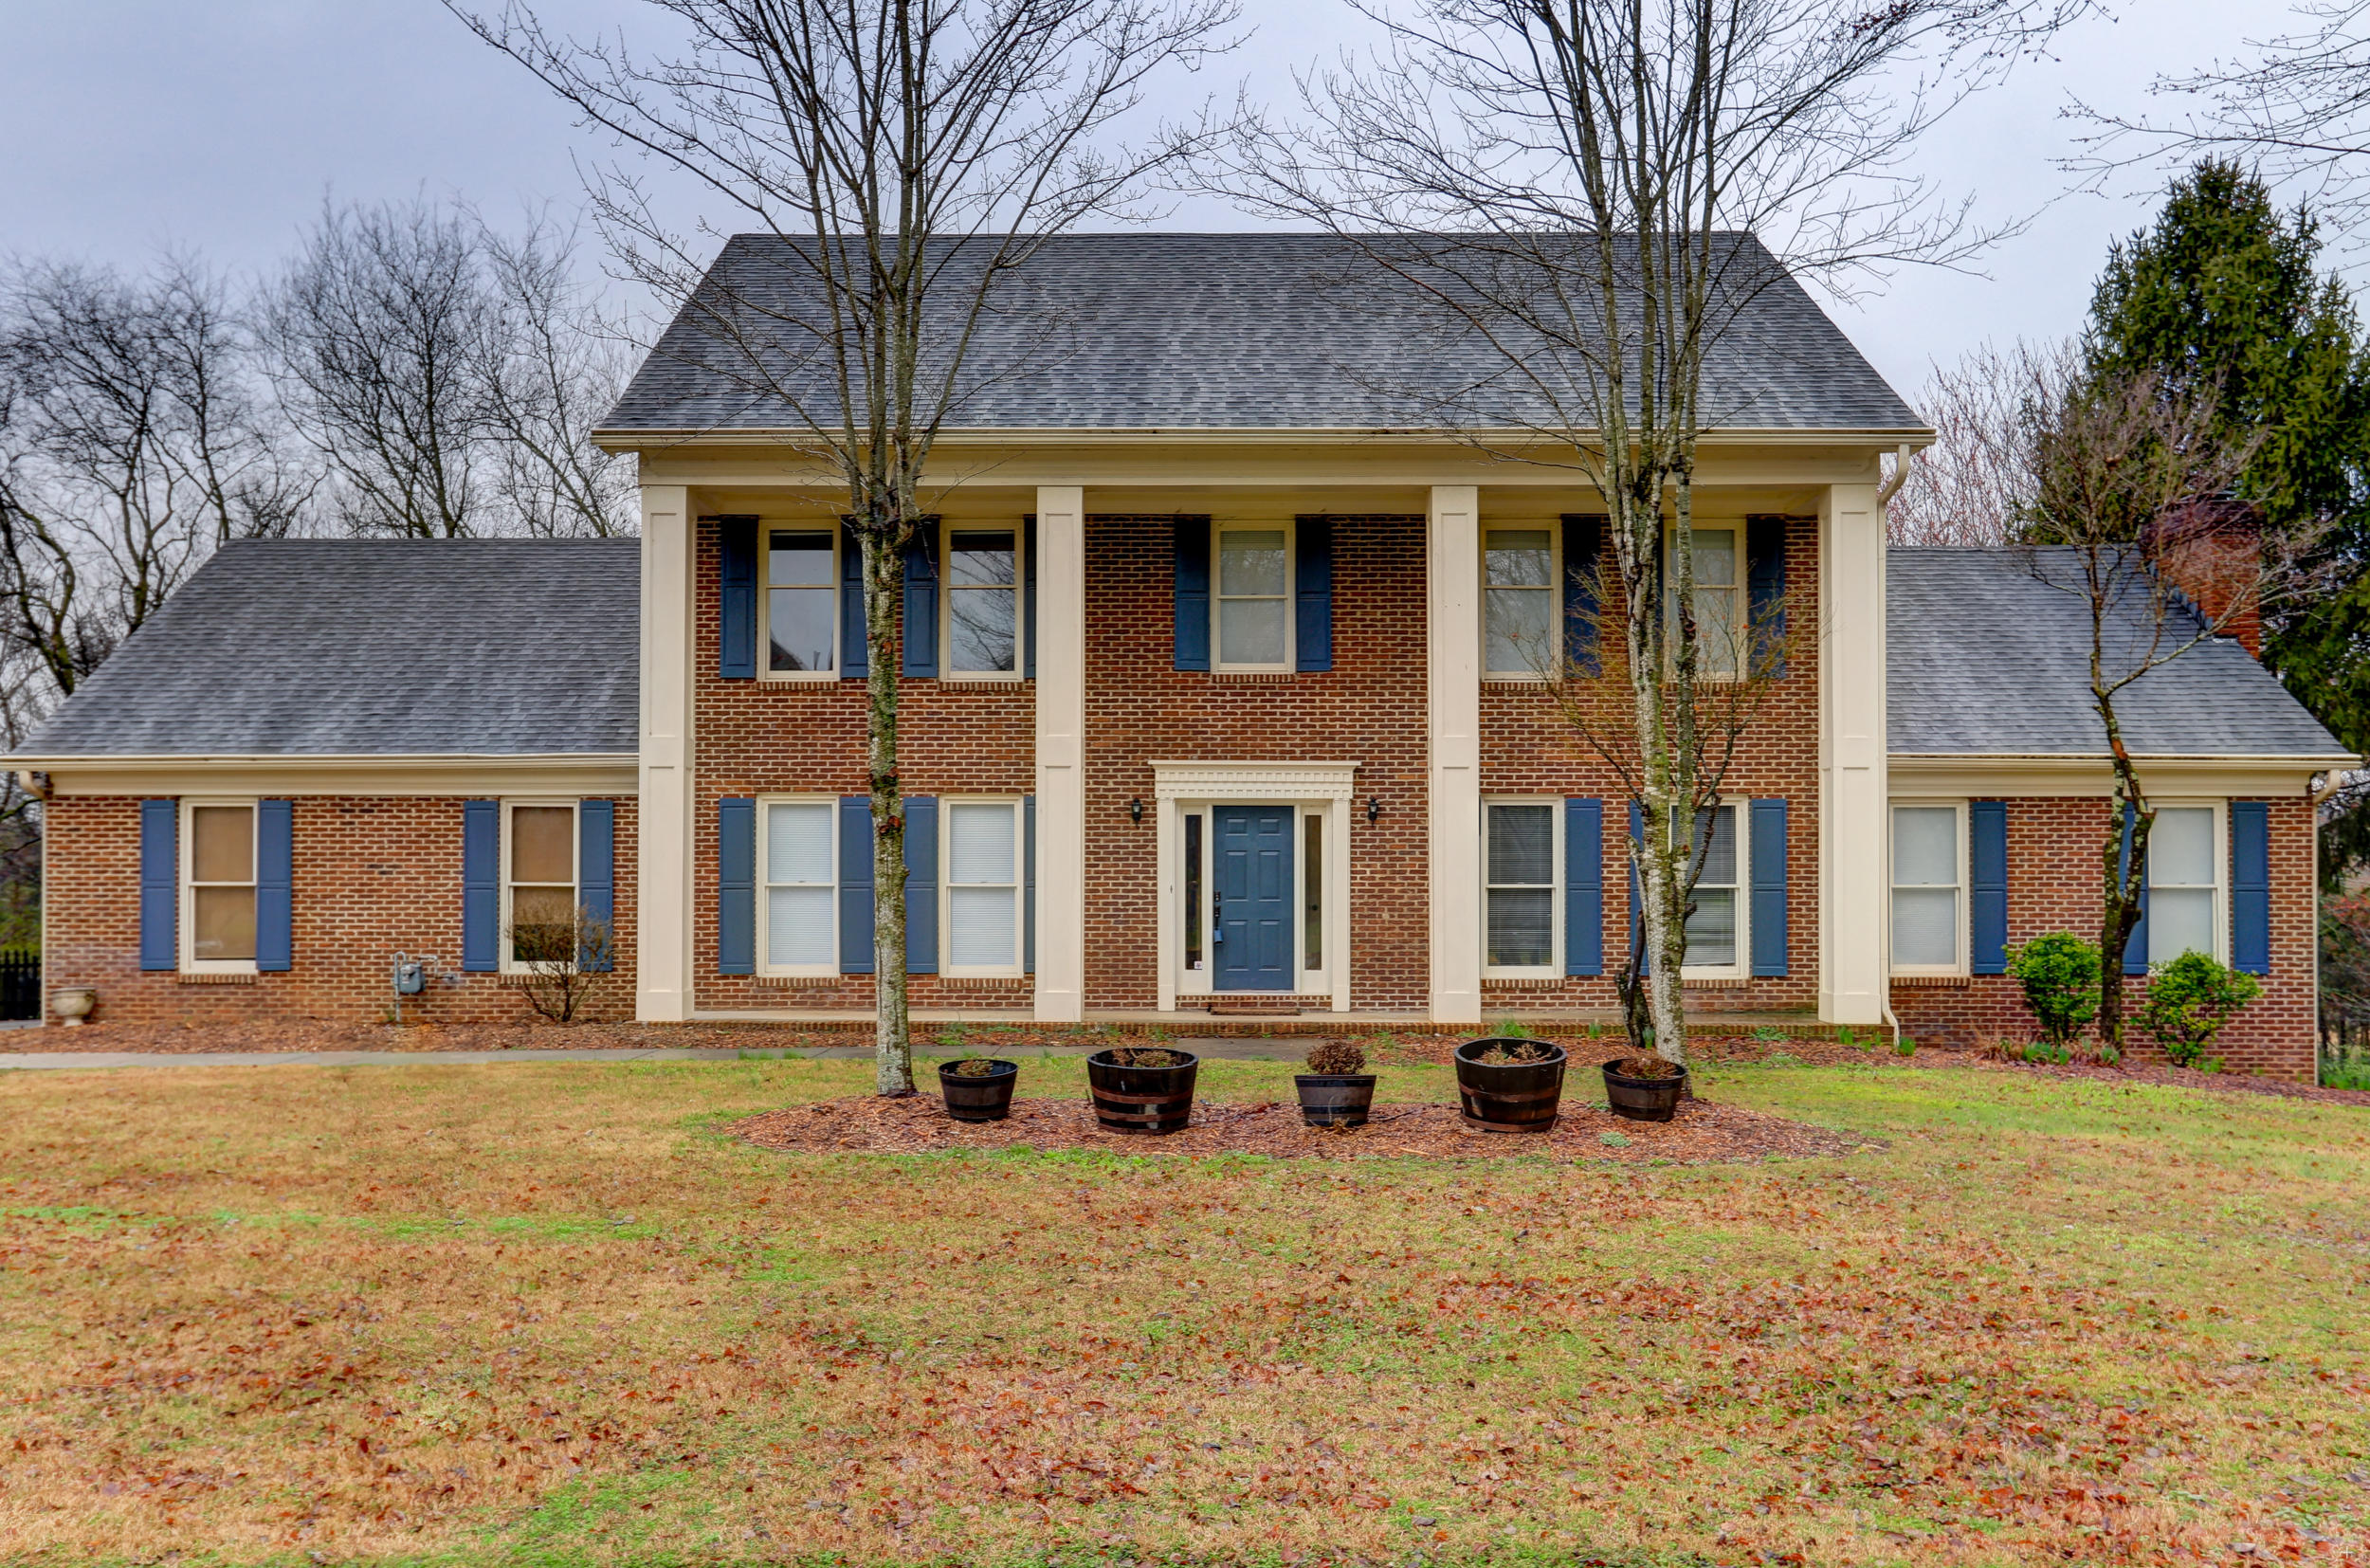 Search Knoxville Area Homes, Condos & Land for Sale. Get ...